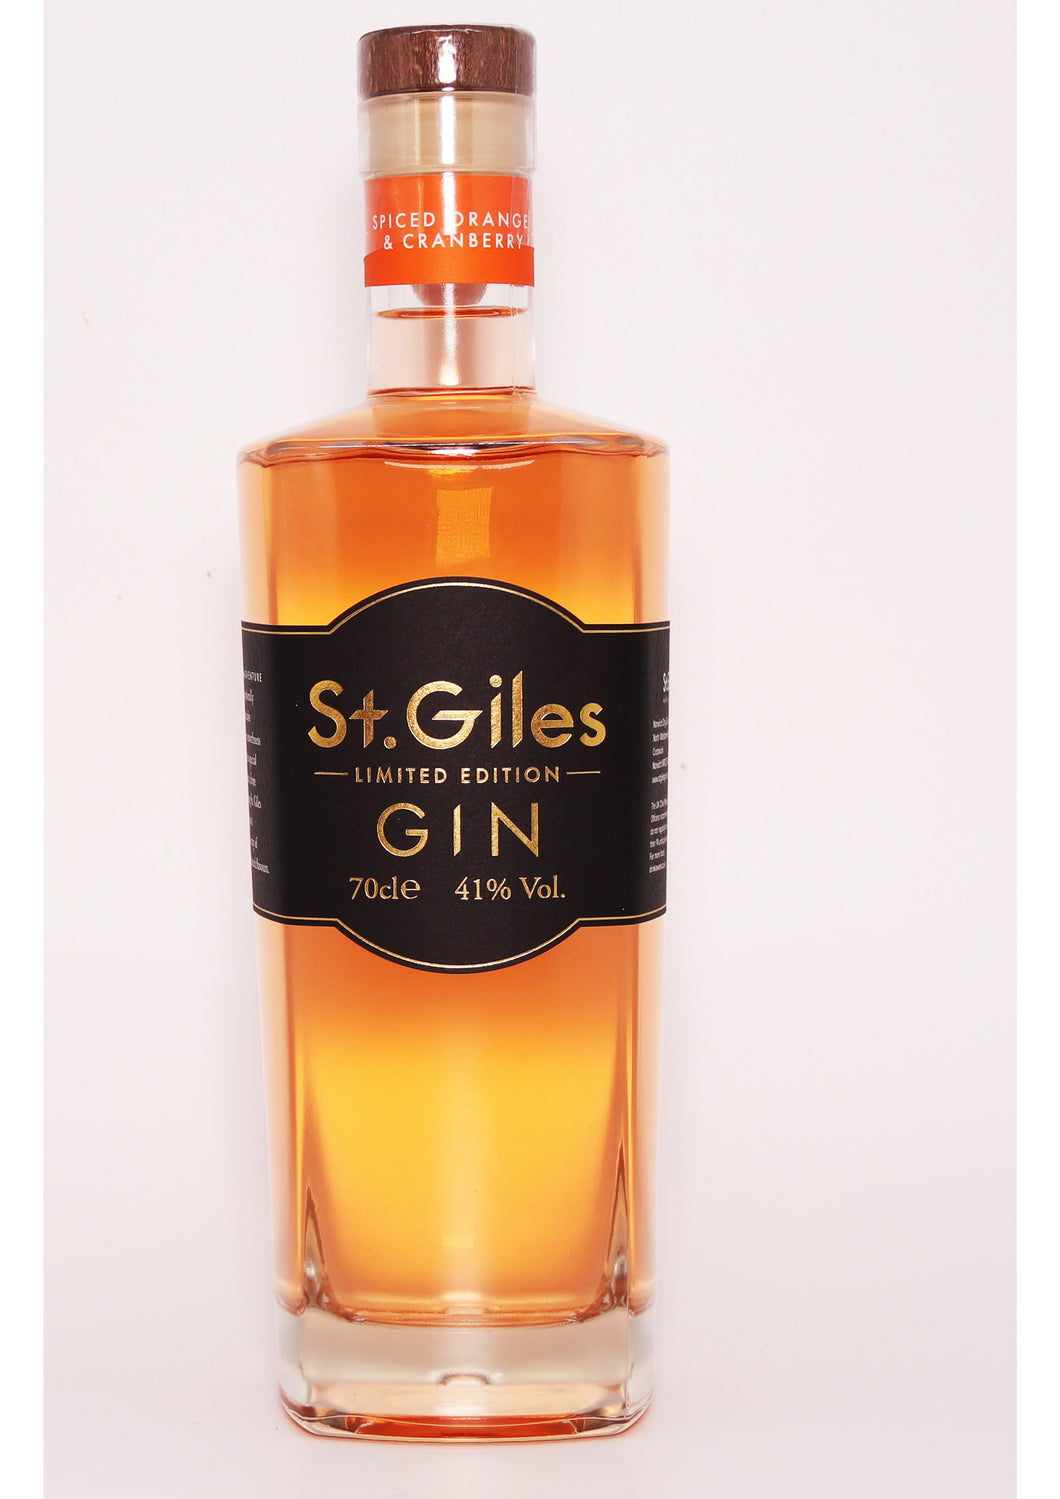 St. Giles Spiced Orange & Cranberry